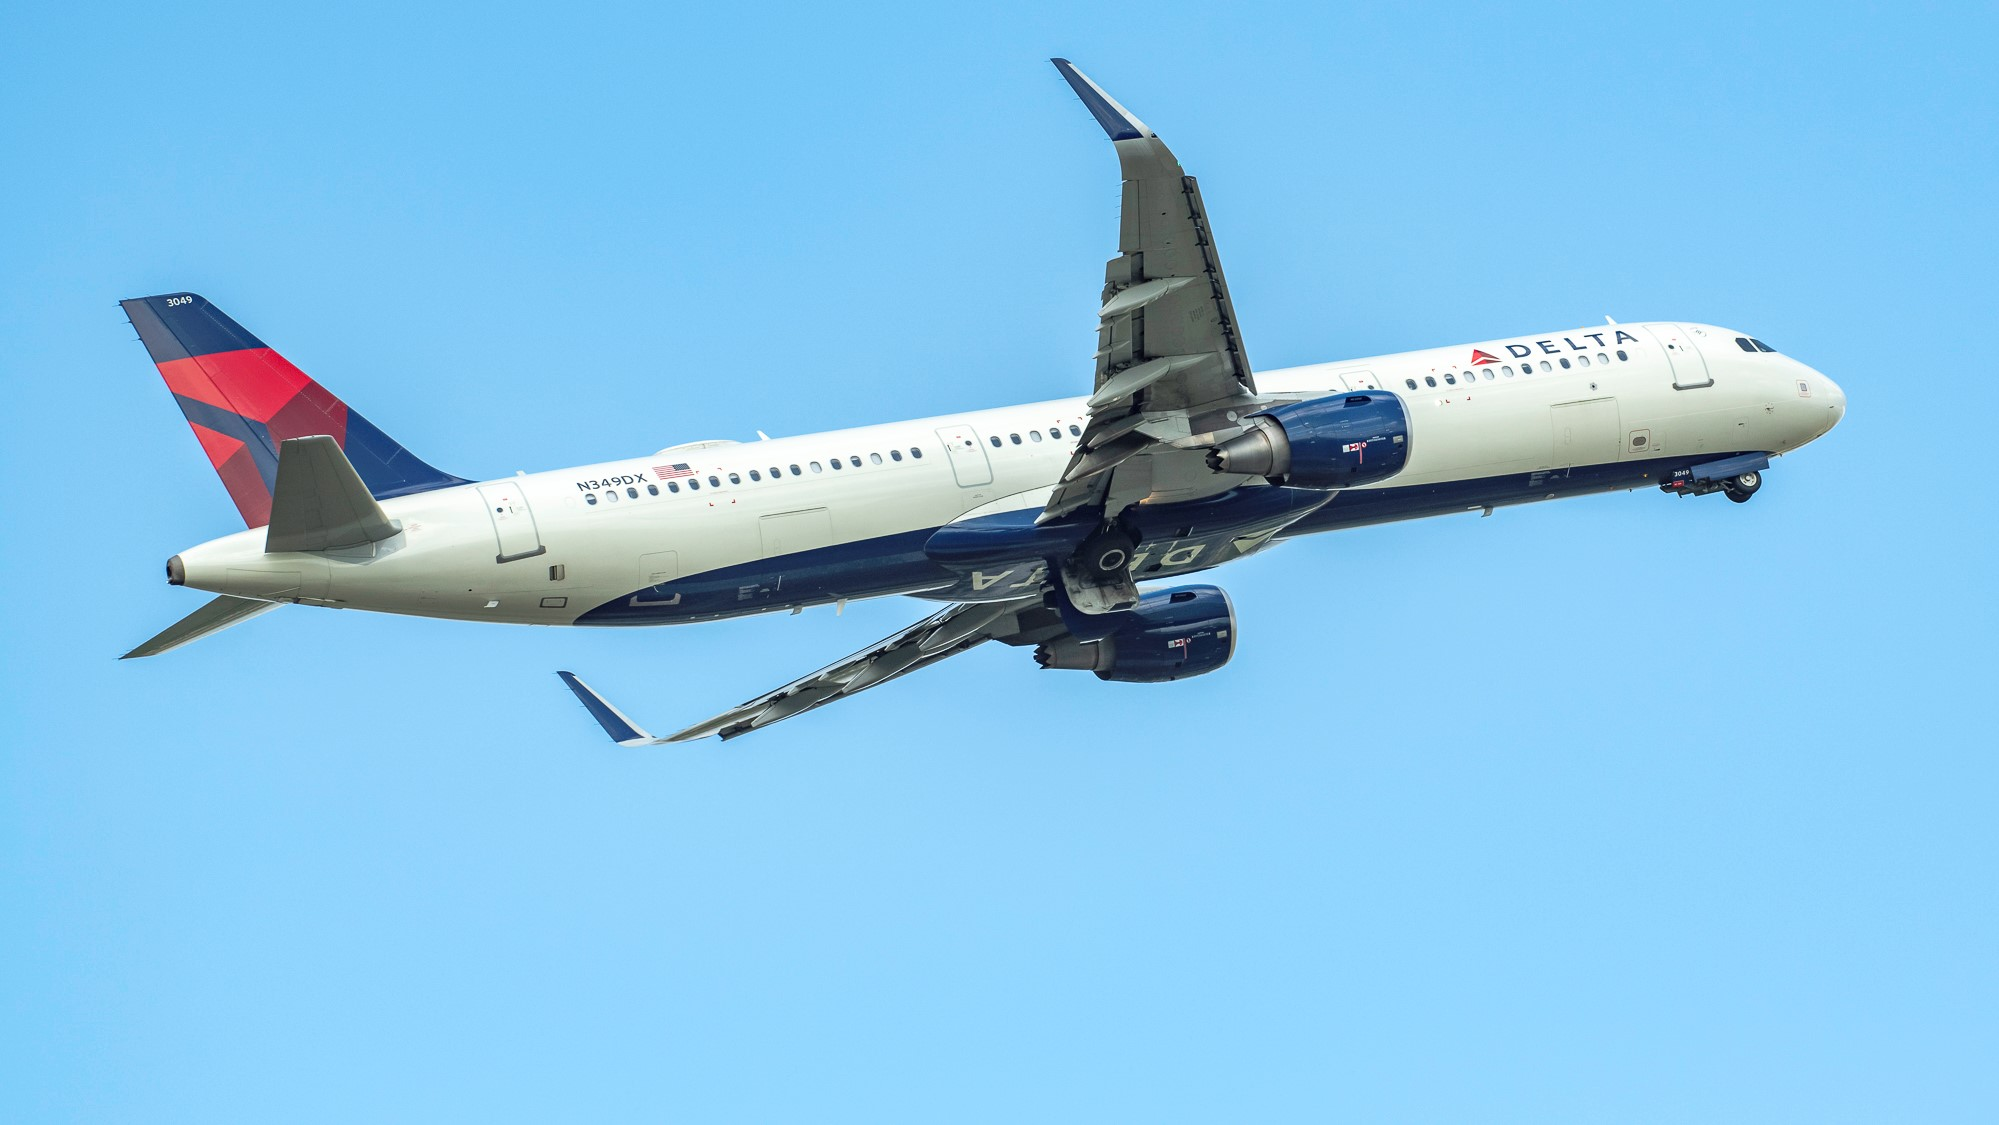 A Delta jet banking in the blue sky, view from underneath.